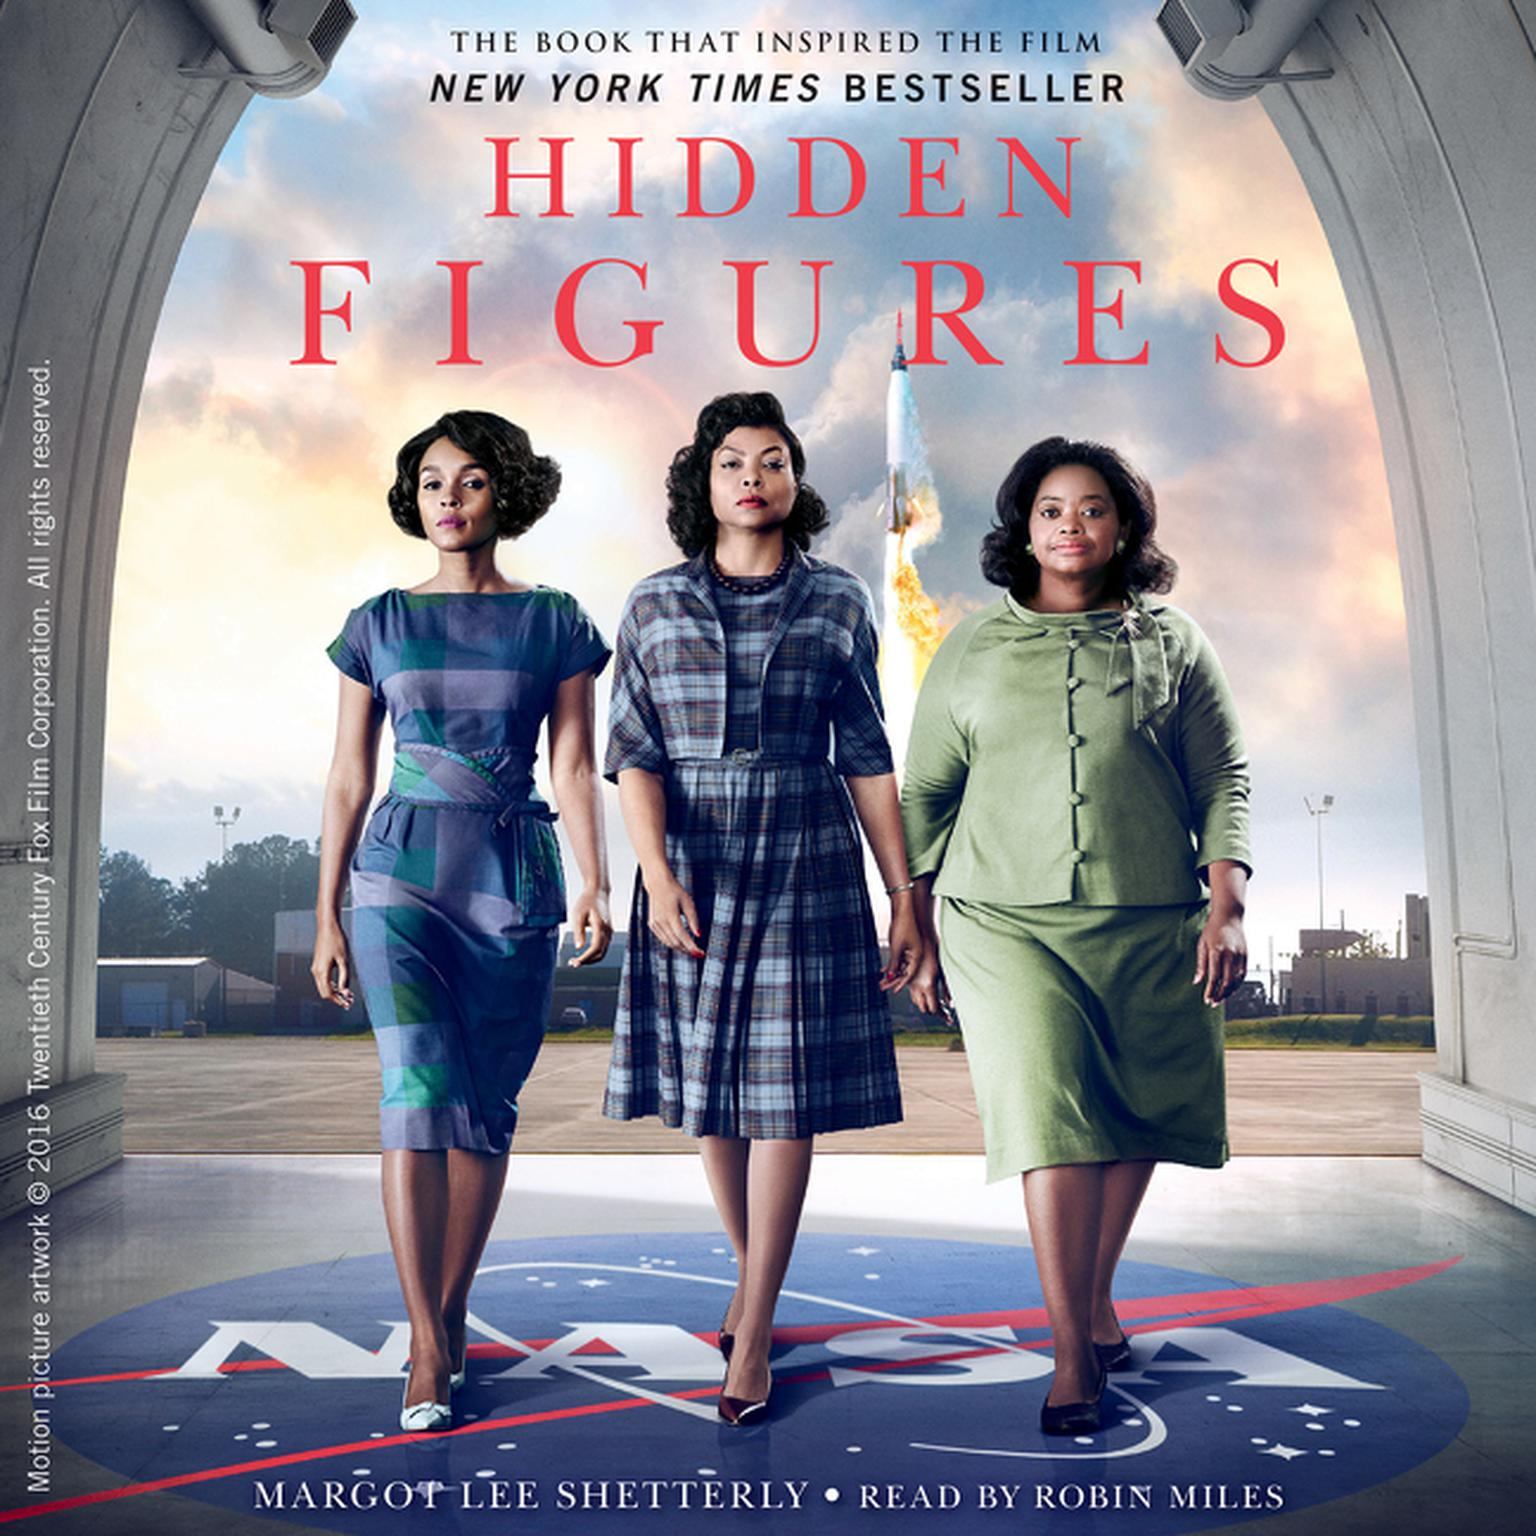 Printable Hidden Figures: The American Dream and the Untold Story of the Black Women Mathematicians Who Helped Win the Space Race Audiobook Cover Art